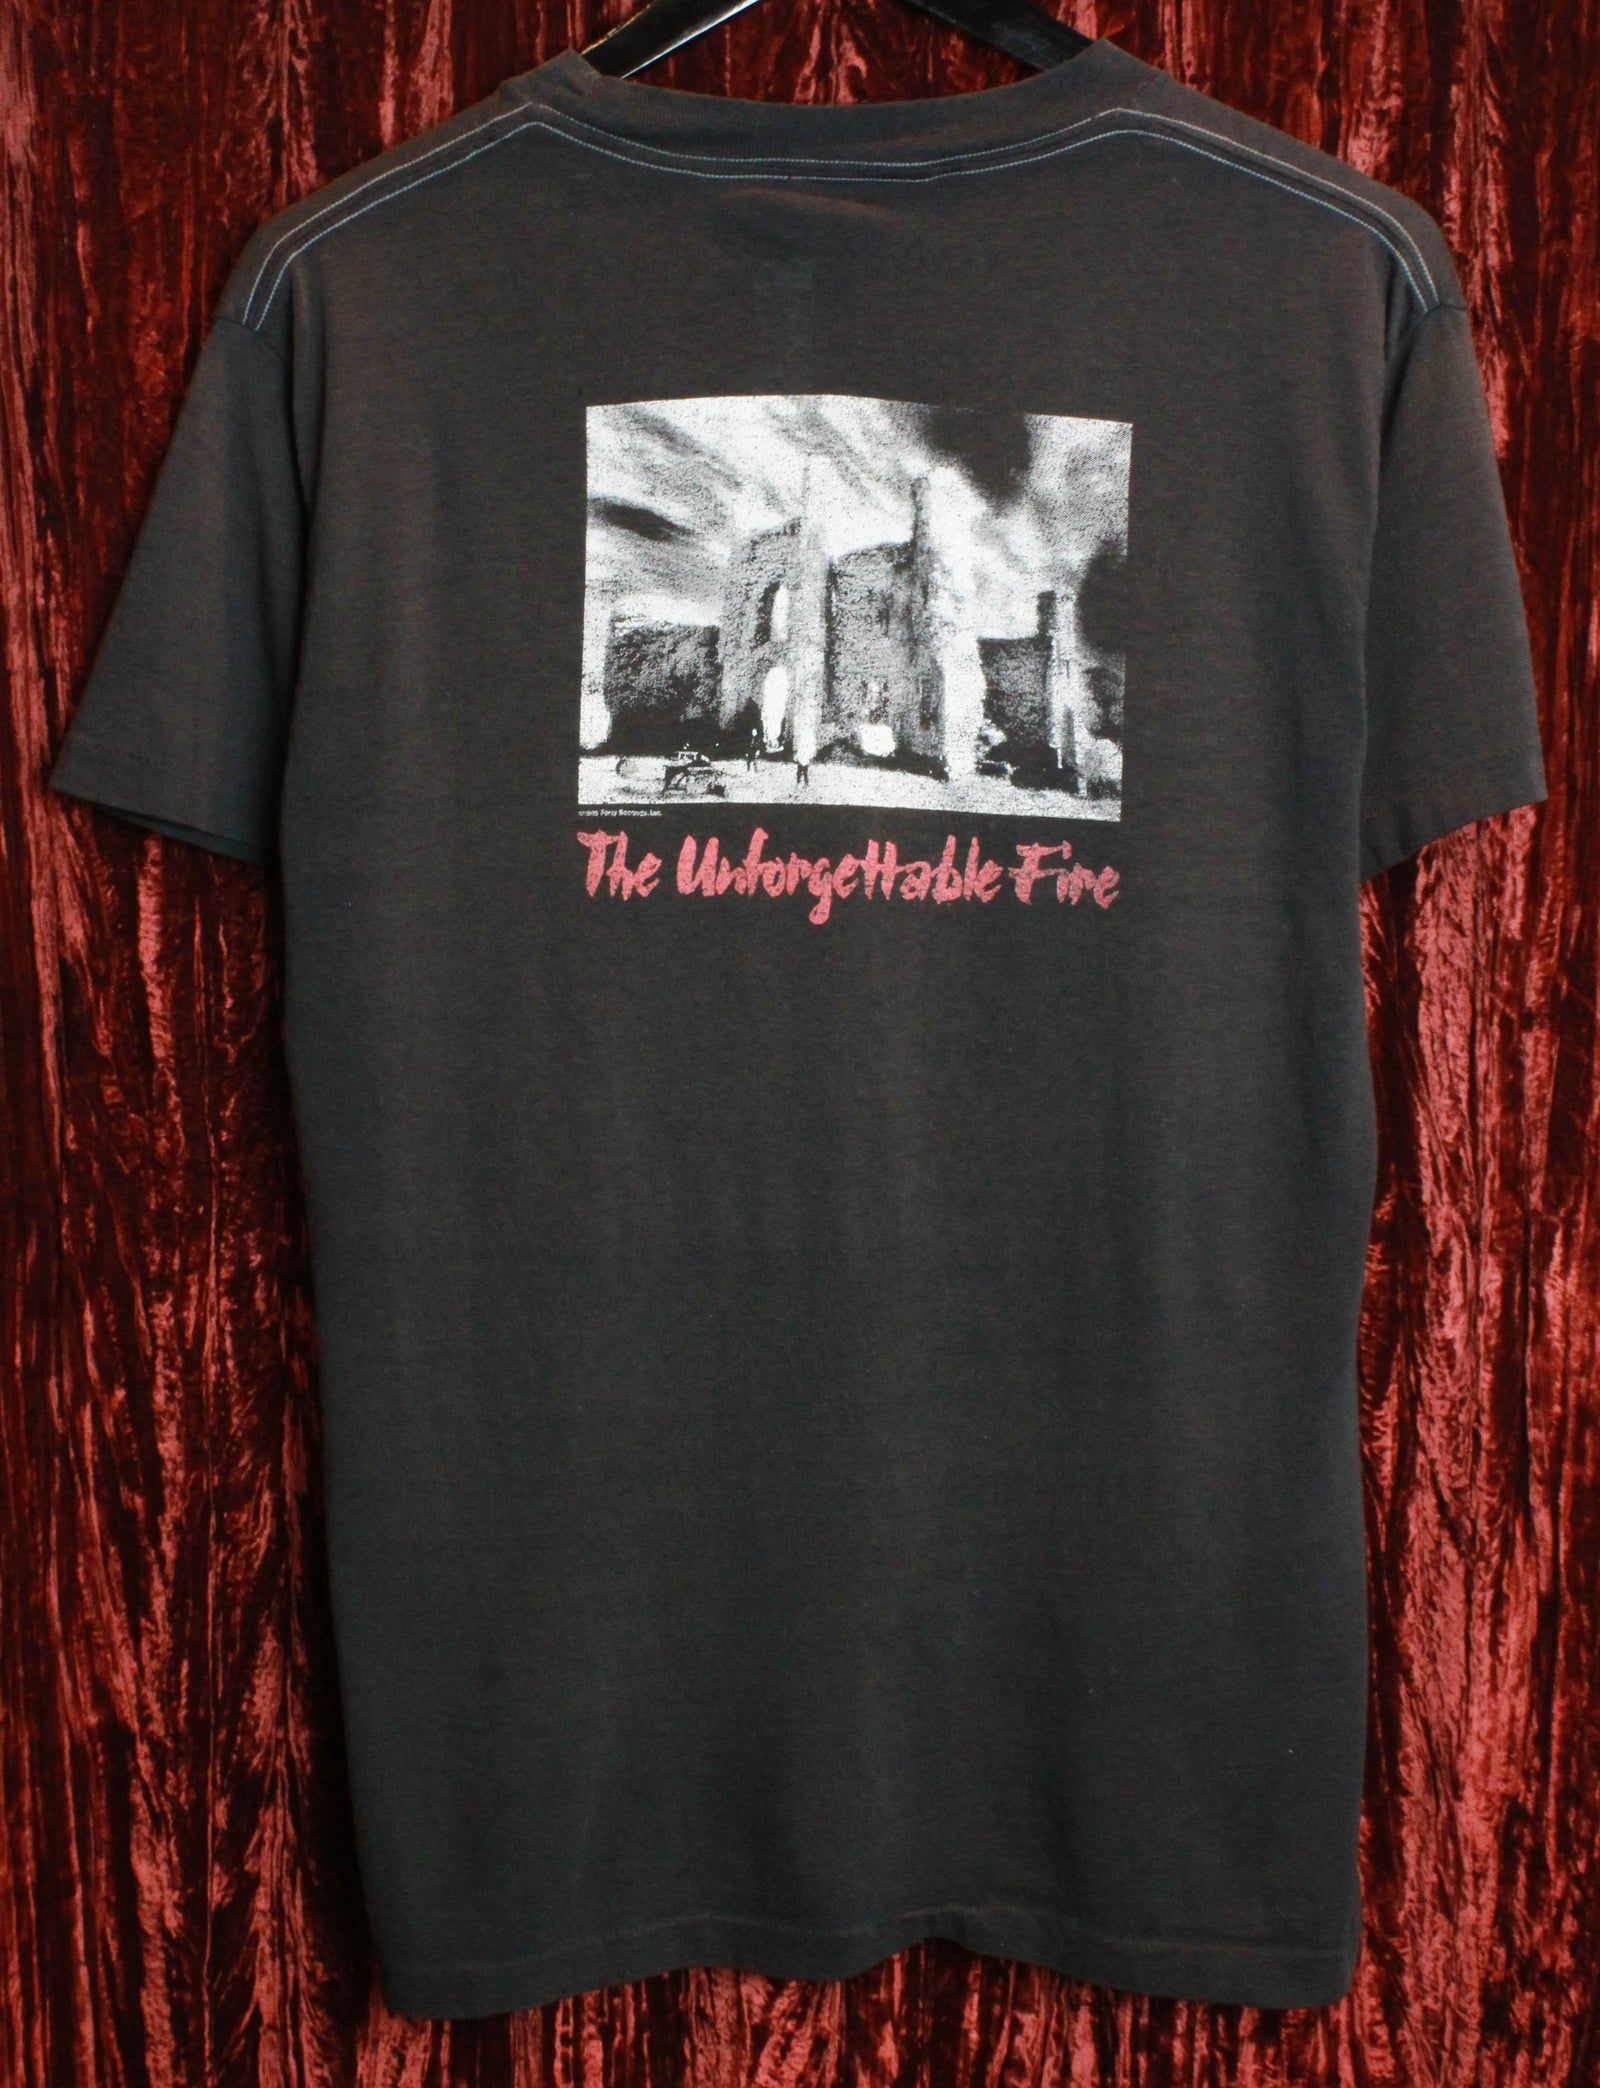 Vintage U2 Concert T Shirt 1985 The Unforgettable Fire Tour Unisex Large